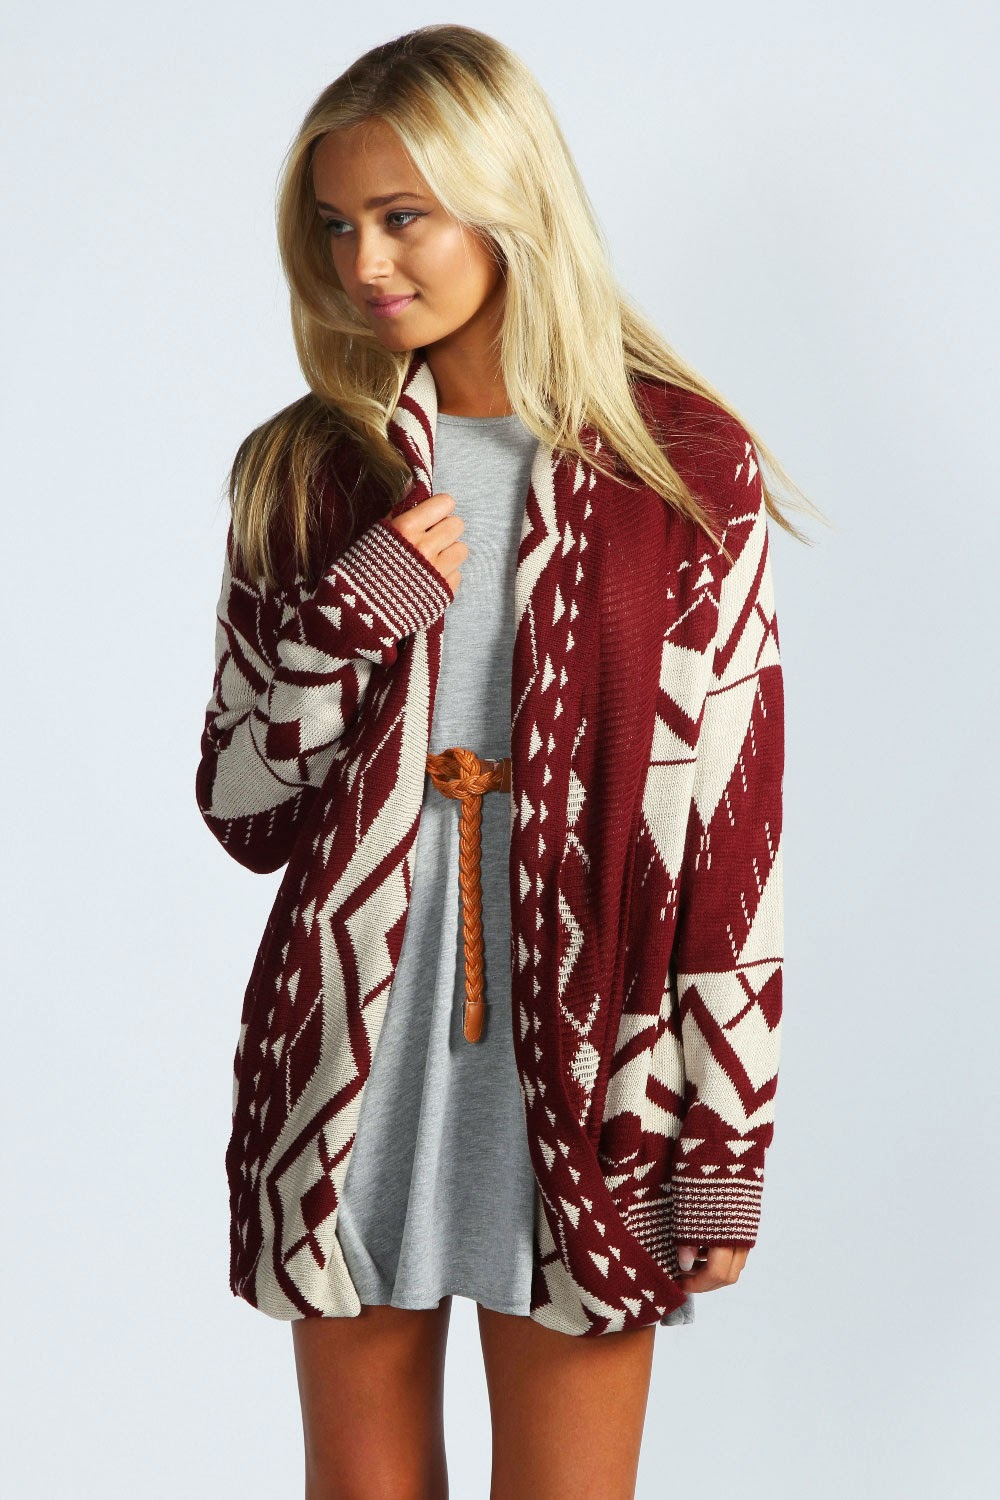 FISACE Women Elegant Aztec Stripes Fall Tassels Slash Hem Cardigan Loose Sweater Shop Best Sellers · Deals of the Day · Fast Shipping · Read Ratings & Reviews.